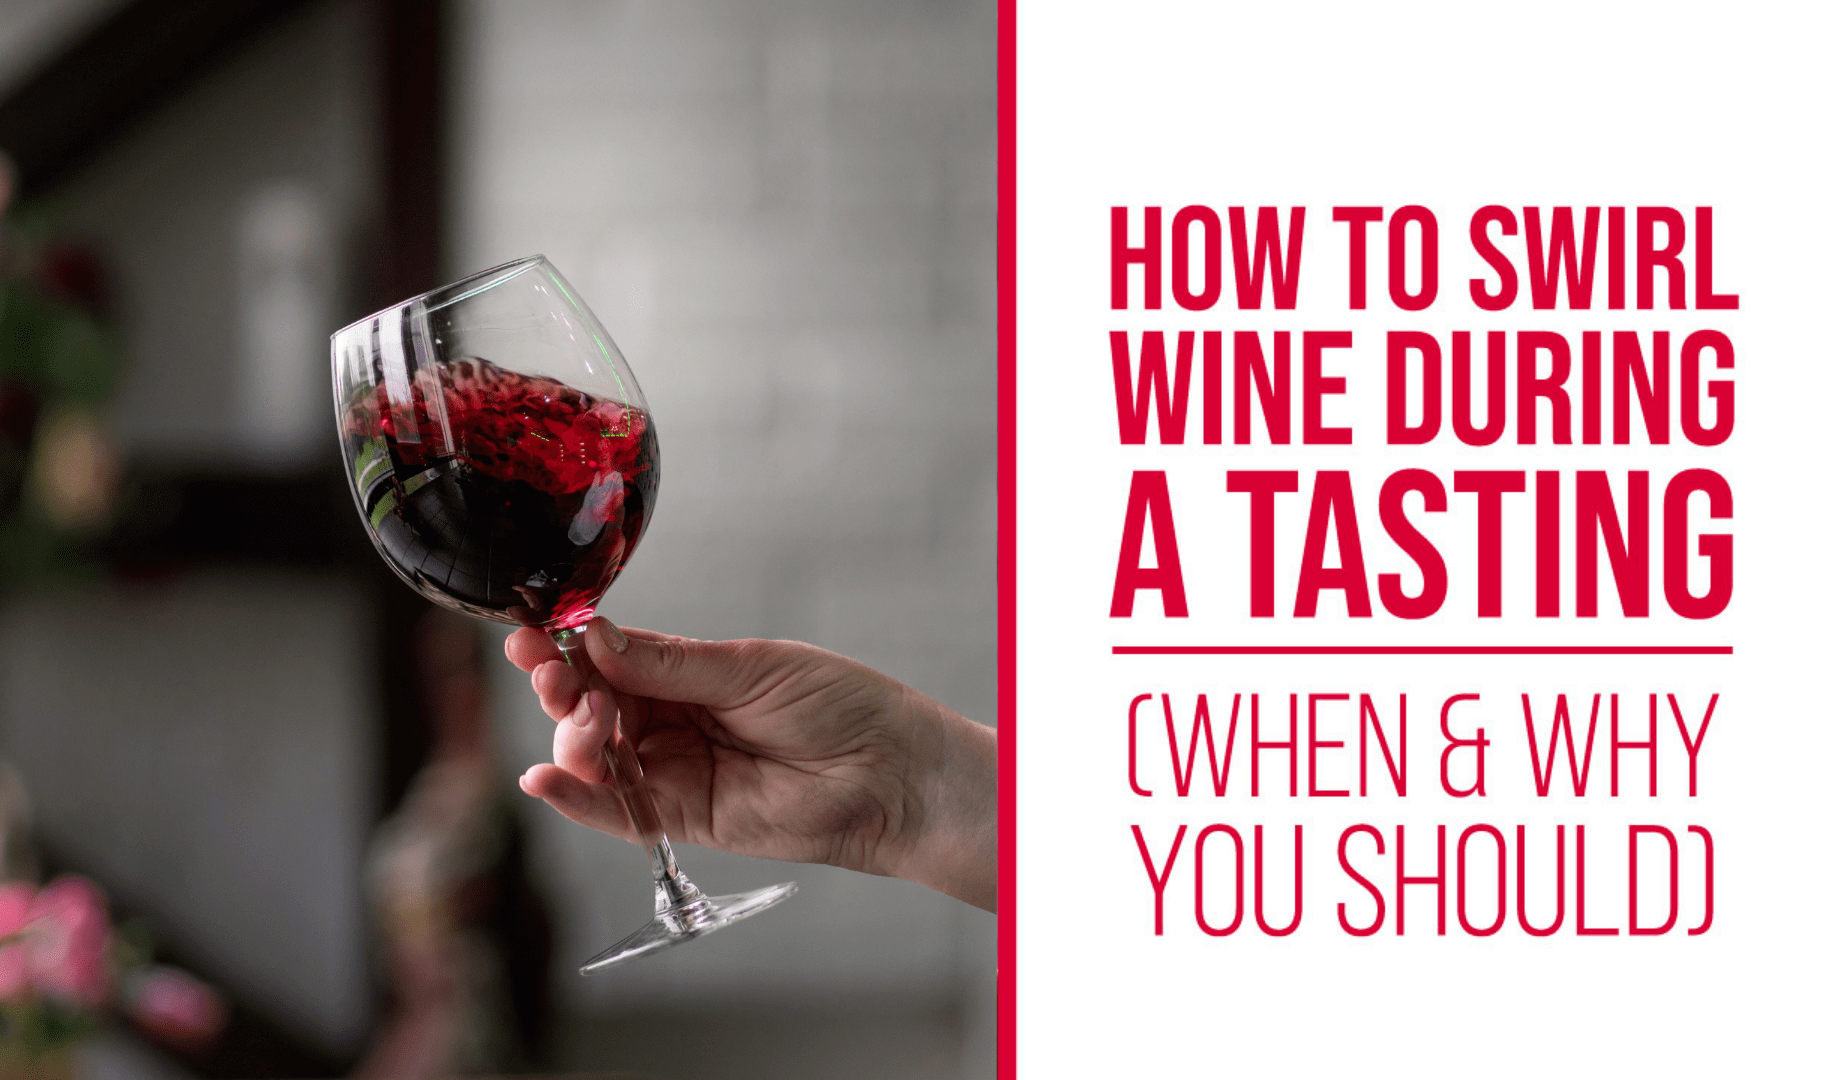 How to Swirl Wine During a Tasting (When & Why You Should)